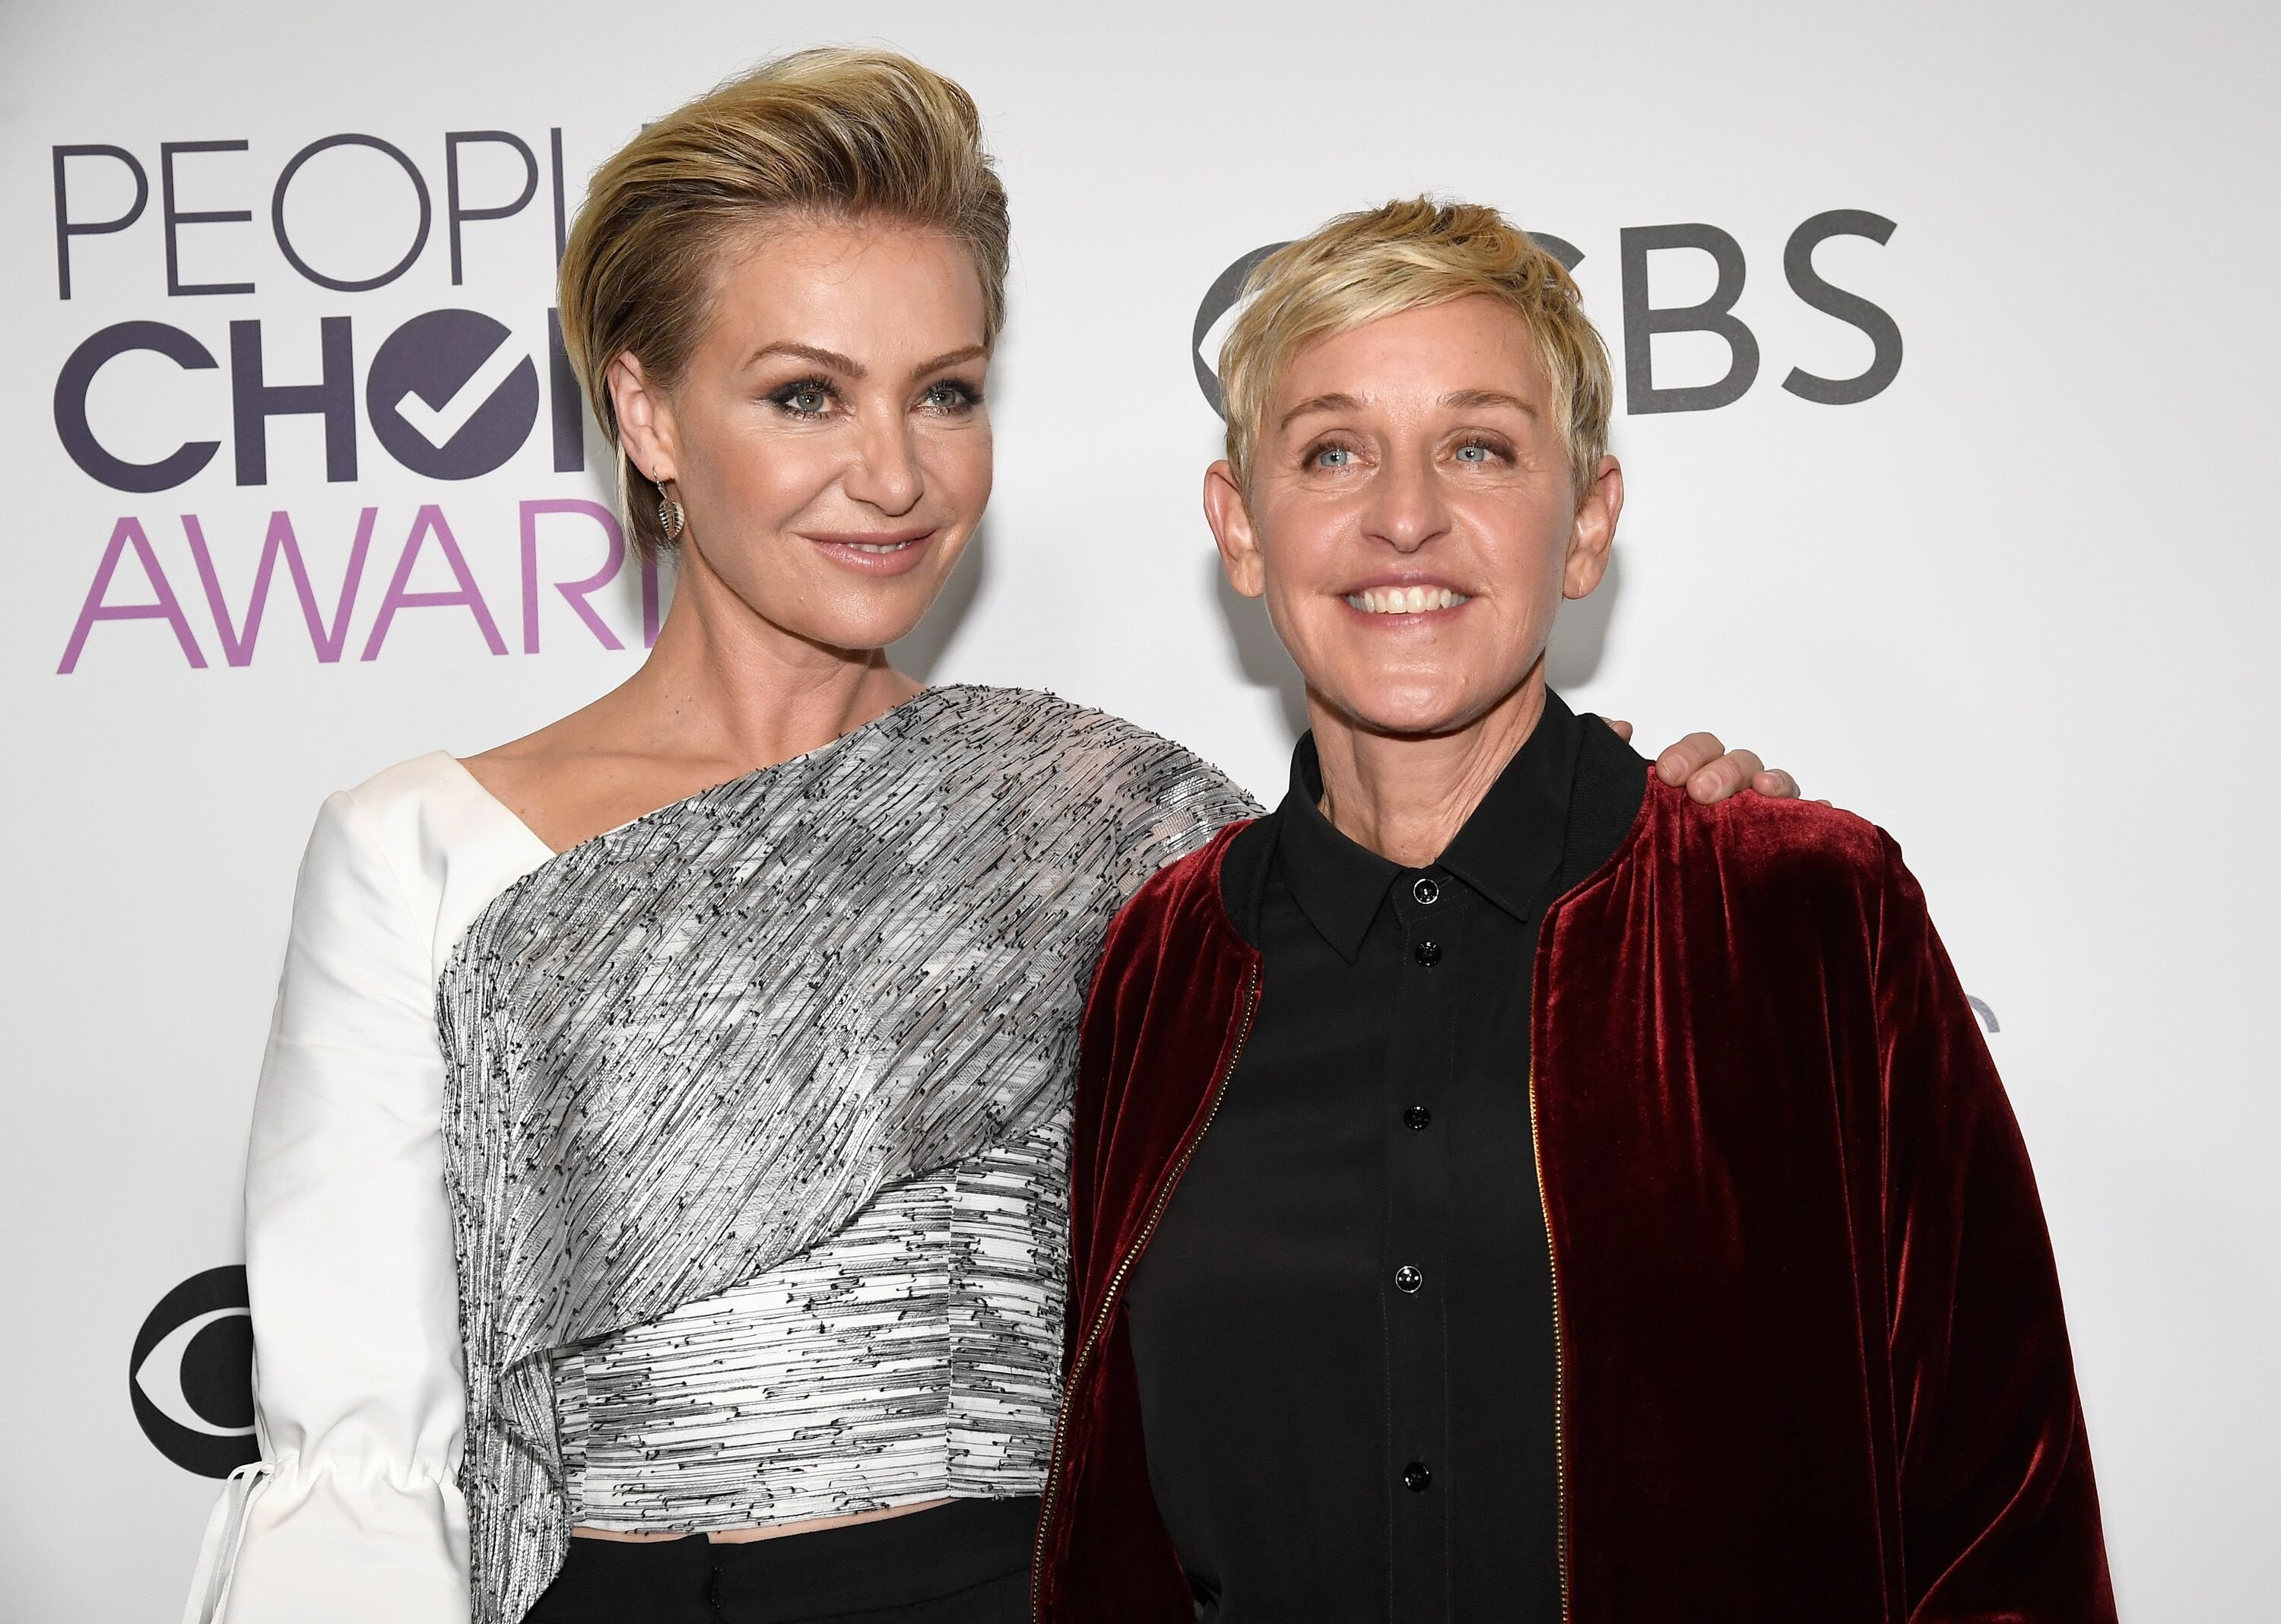 Ellen DeGeneres and wife Portia de Rossi at the People's Choice Awards| Source: Getty Images